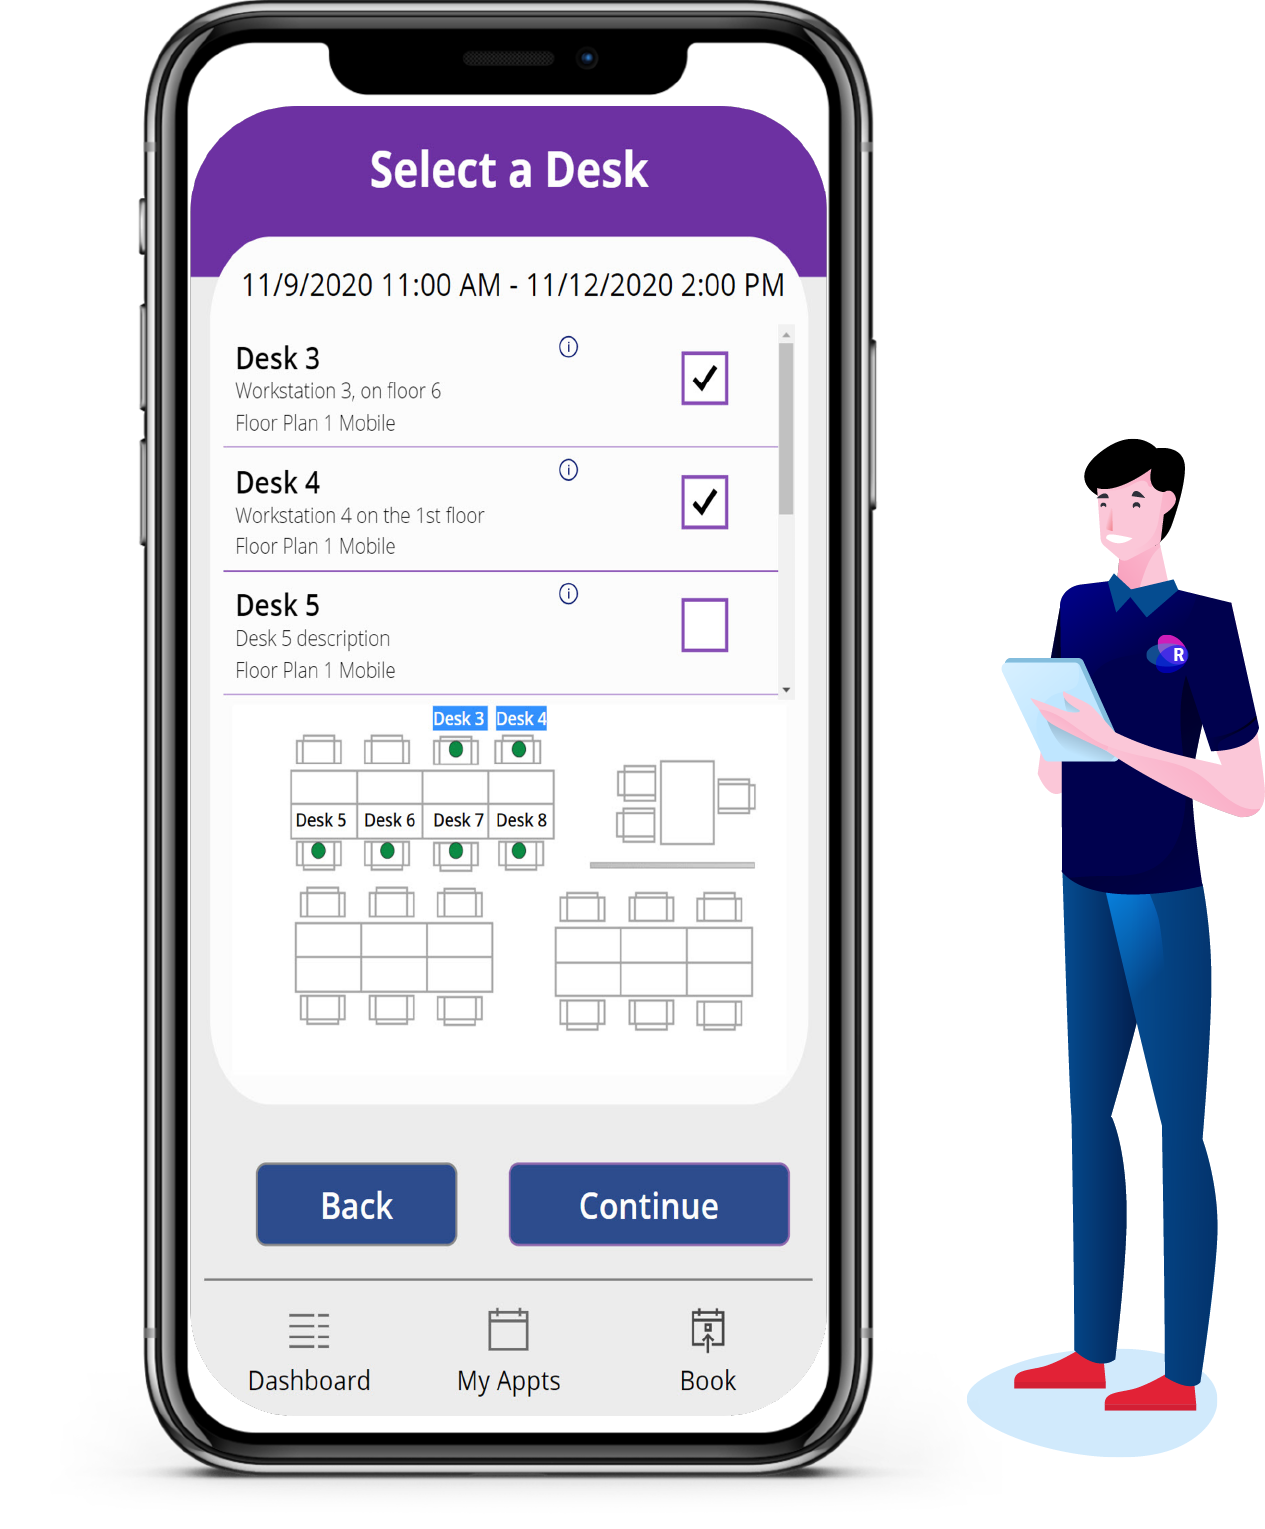 Desk Booking Room Manager App